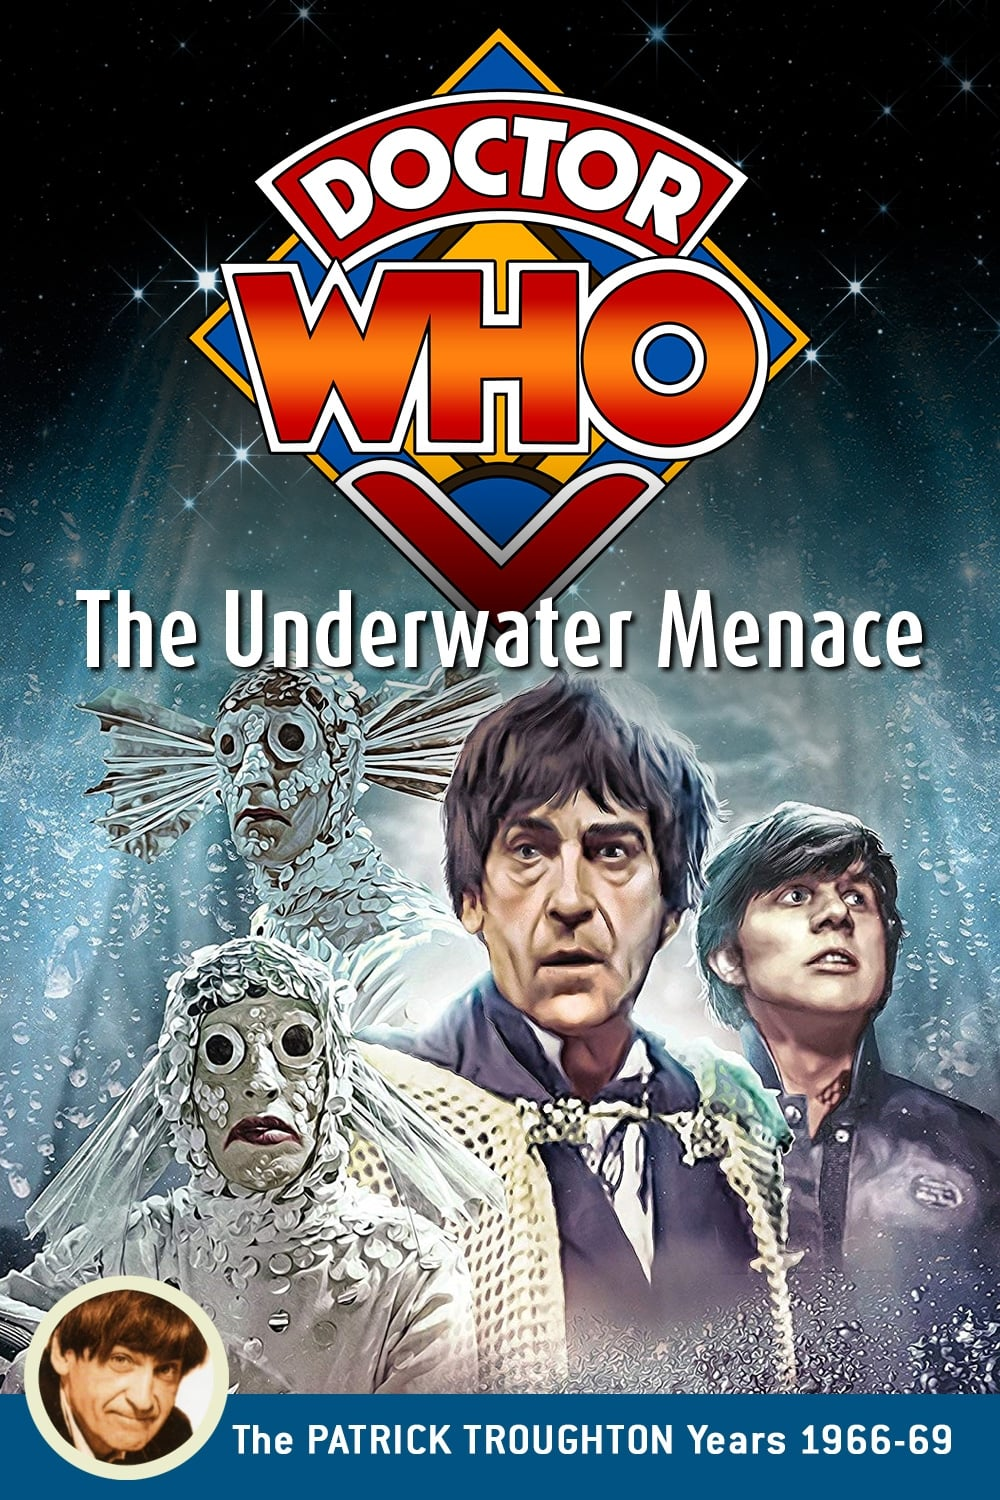 Doctor Who: The Underwater Menace (1967)